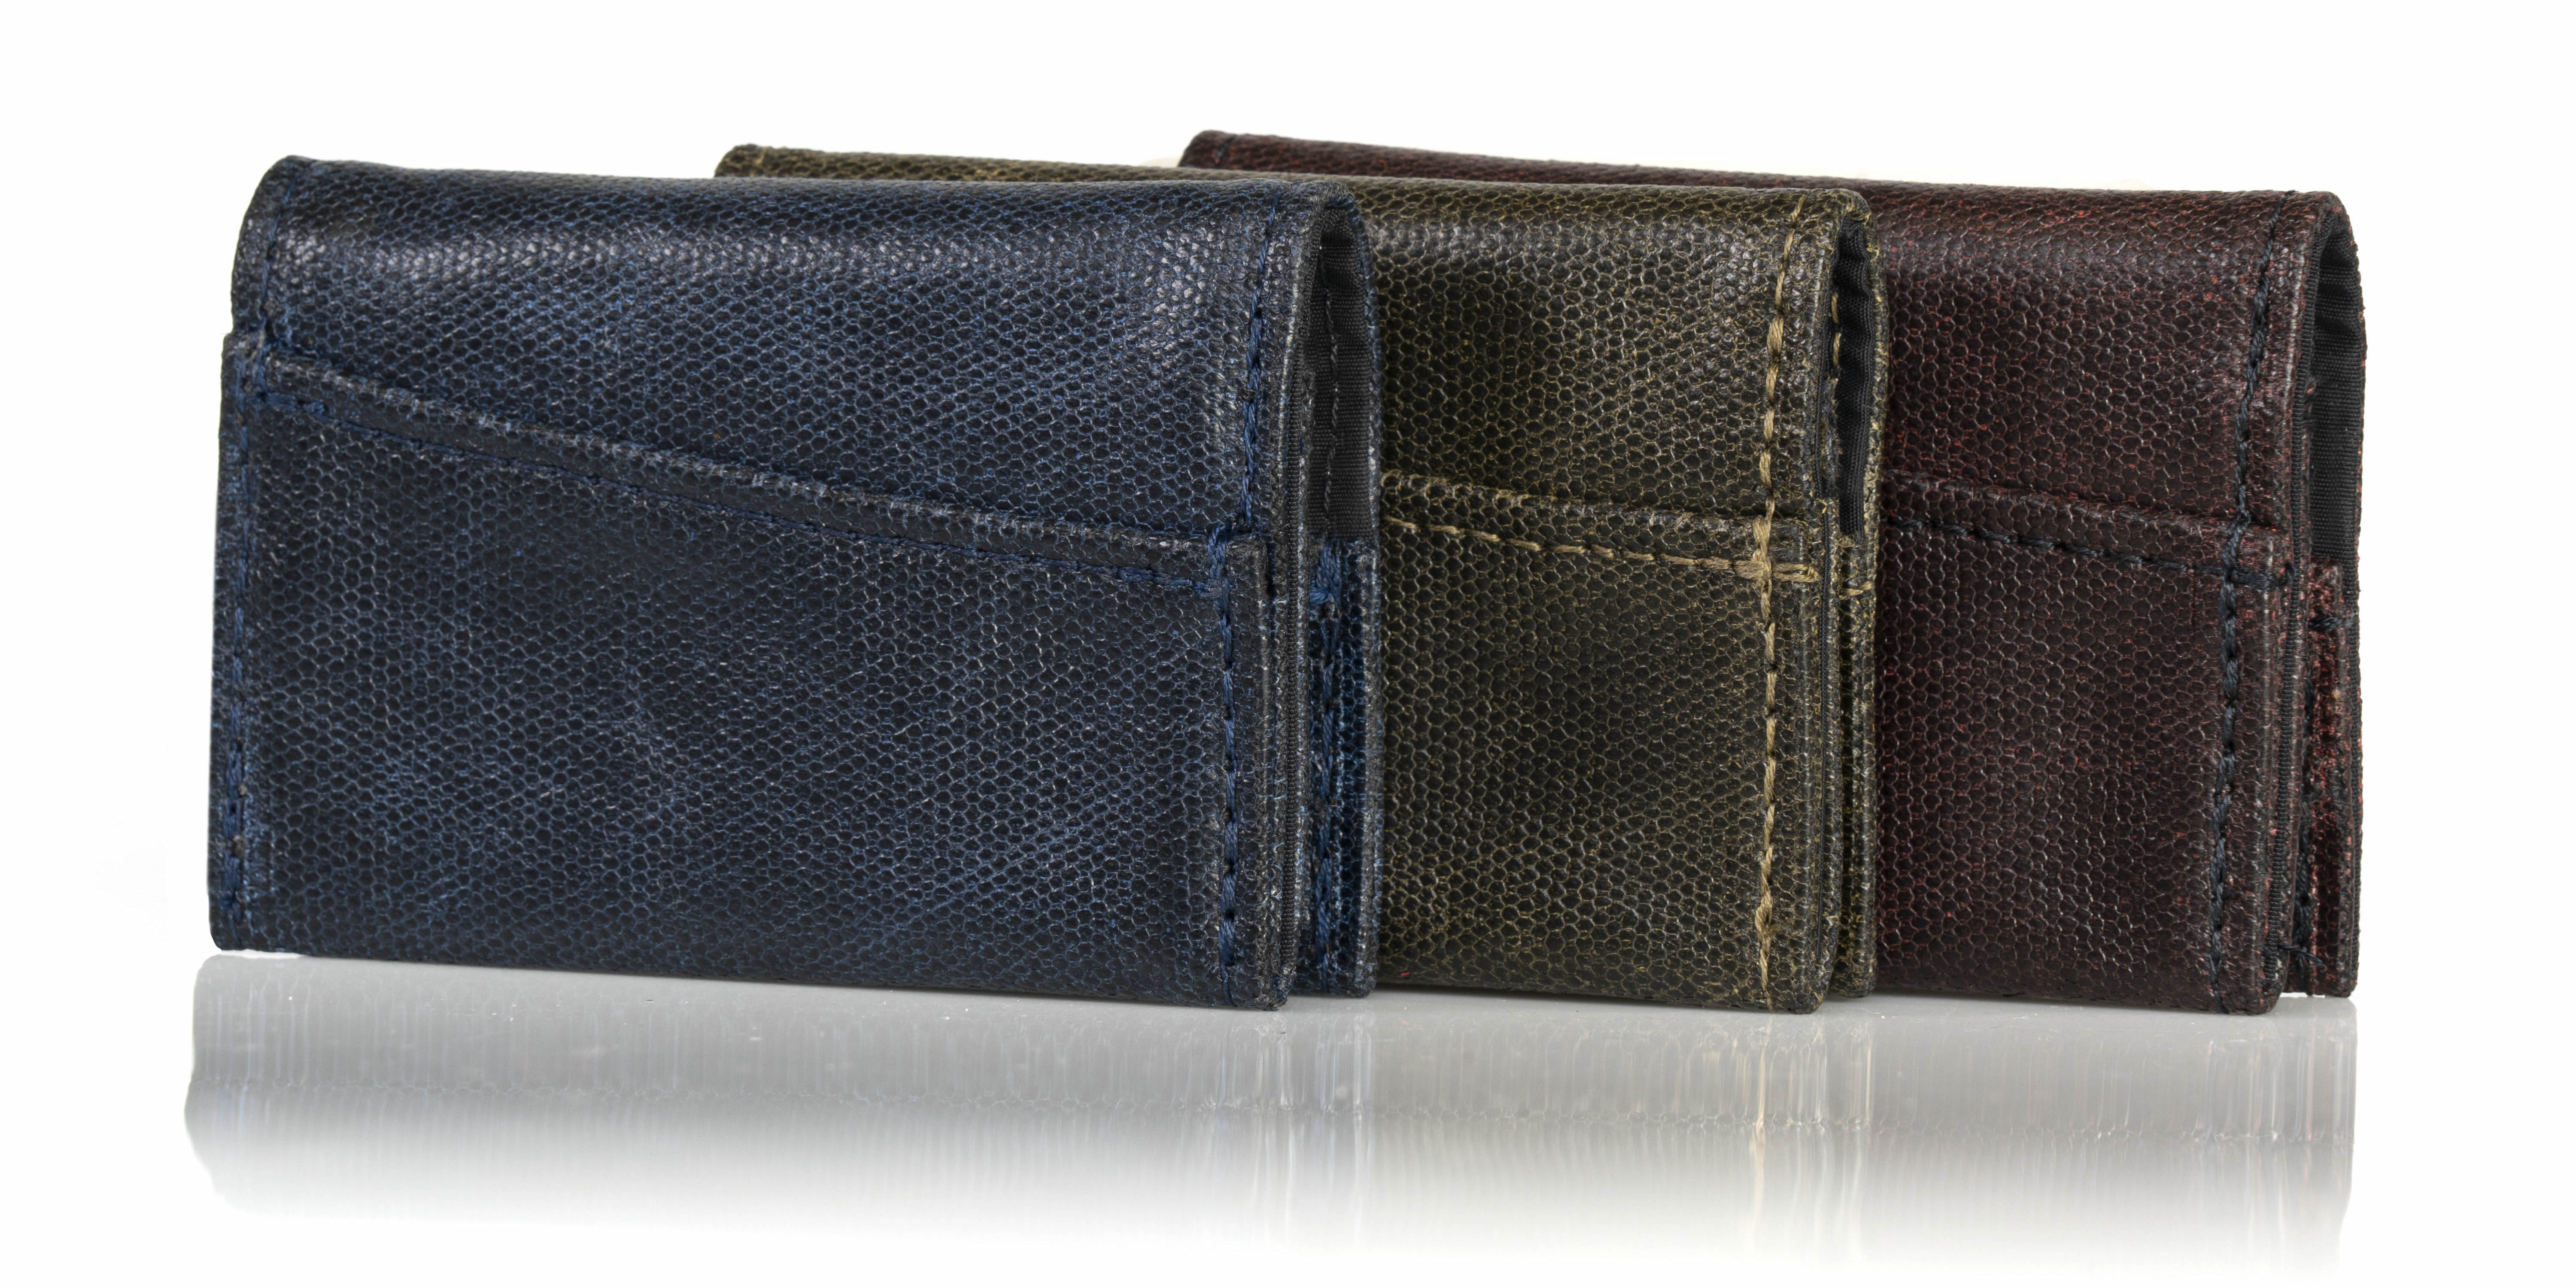 Minimo Leather Minimalist Wallets up for pre-order